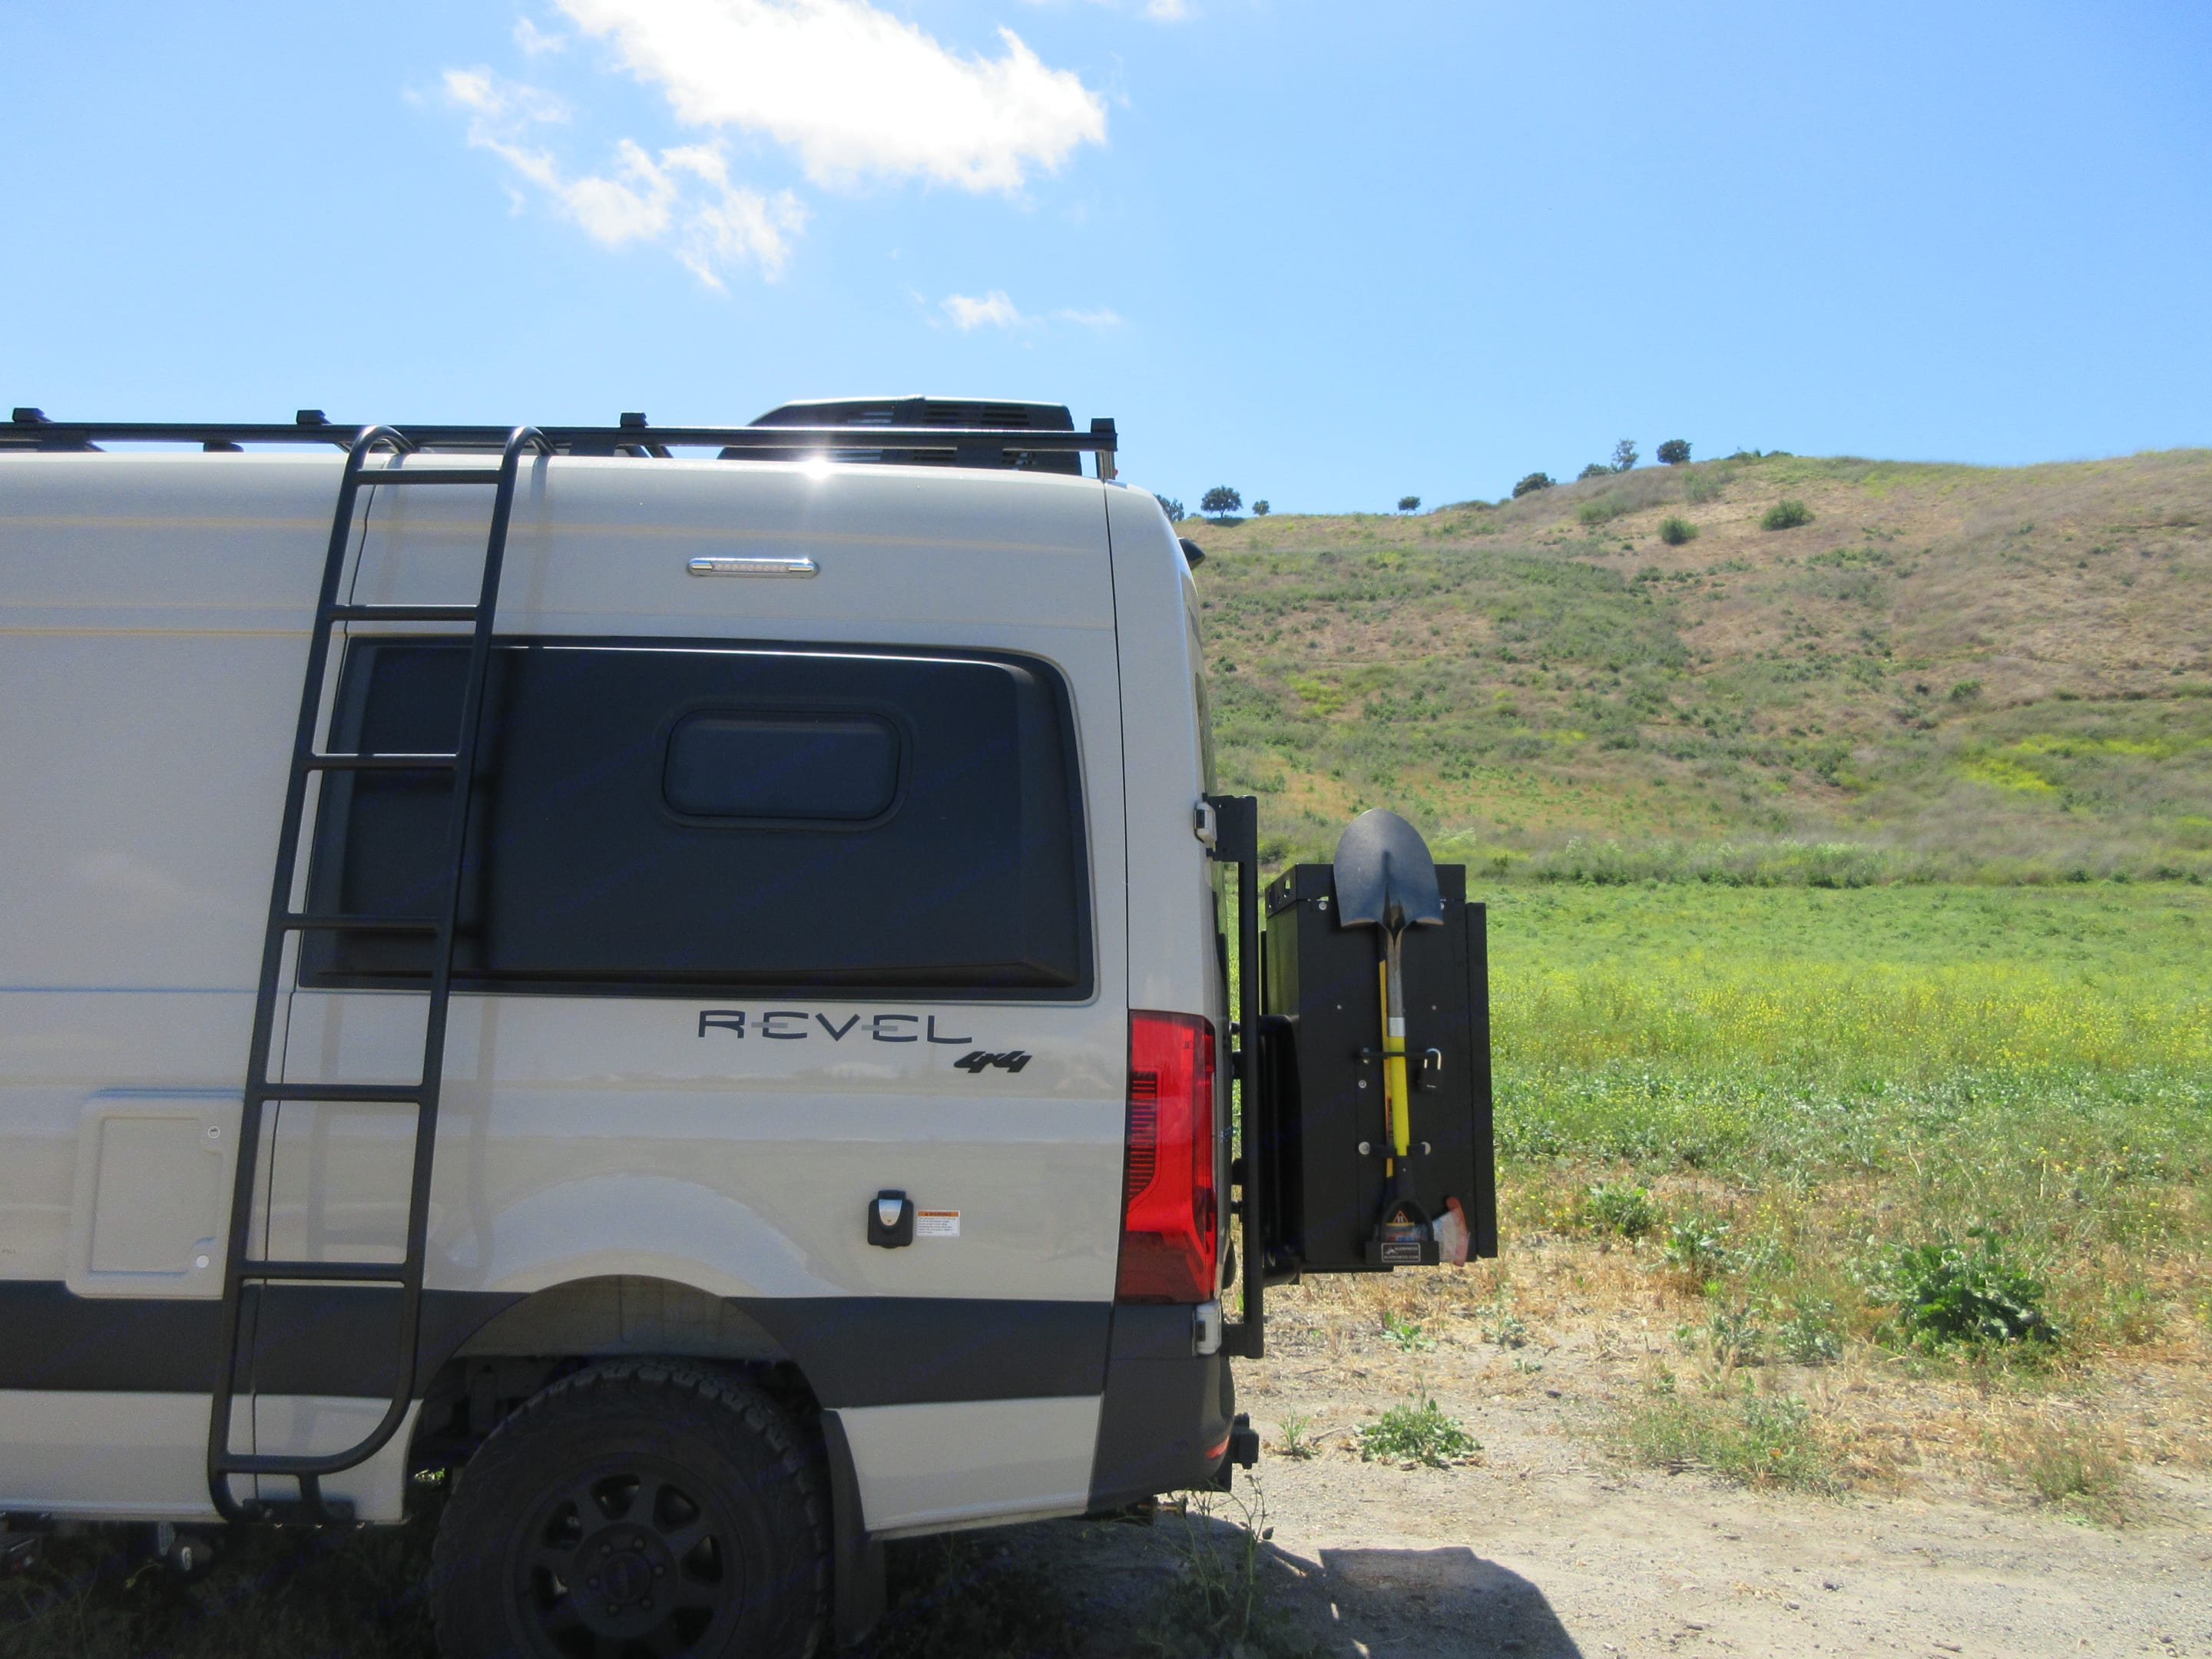 Rear showing Ladder and 2 boxes w/ Expedition Kit (Shovel / Axe Pack). Winnebago Revel 2020